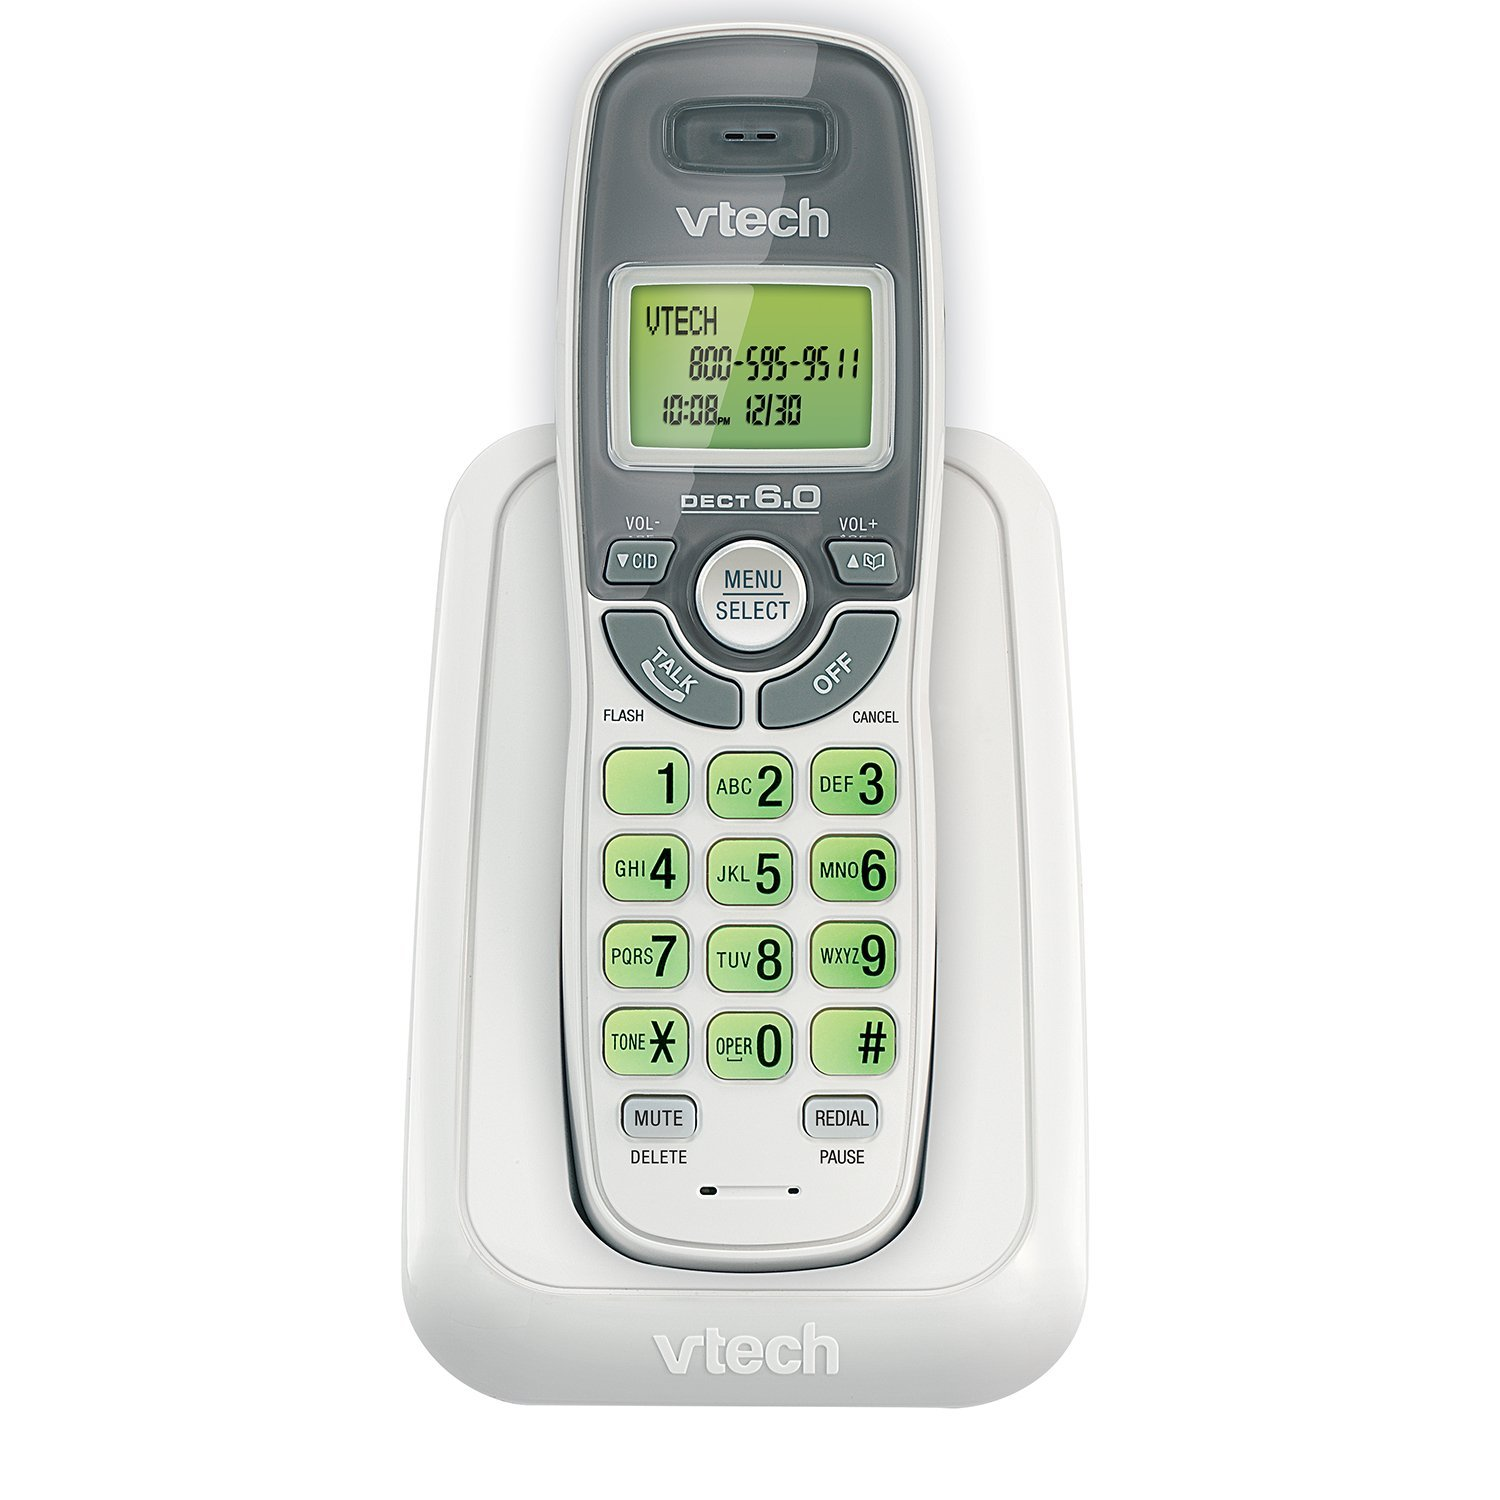 CS6114 DECT 6.0 Cordless Phone with Caller ID/Call Waiting, White/Grey with 1 Handset, DECT 6.0 Digital technology, Caller ID/Call Waiting, Backlit keypad and.., By VTech